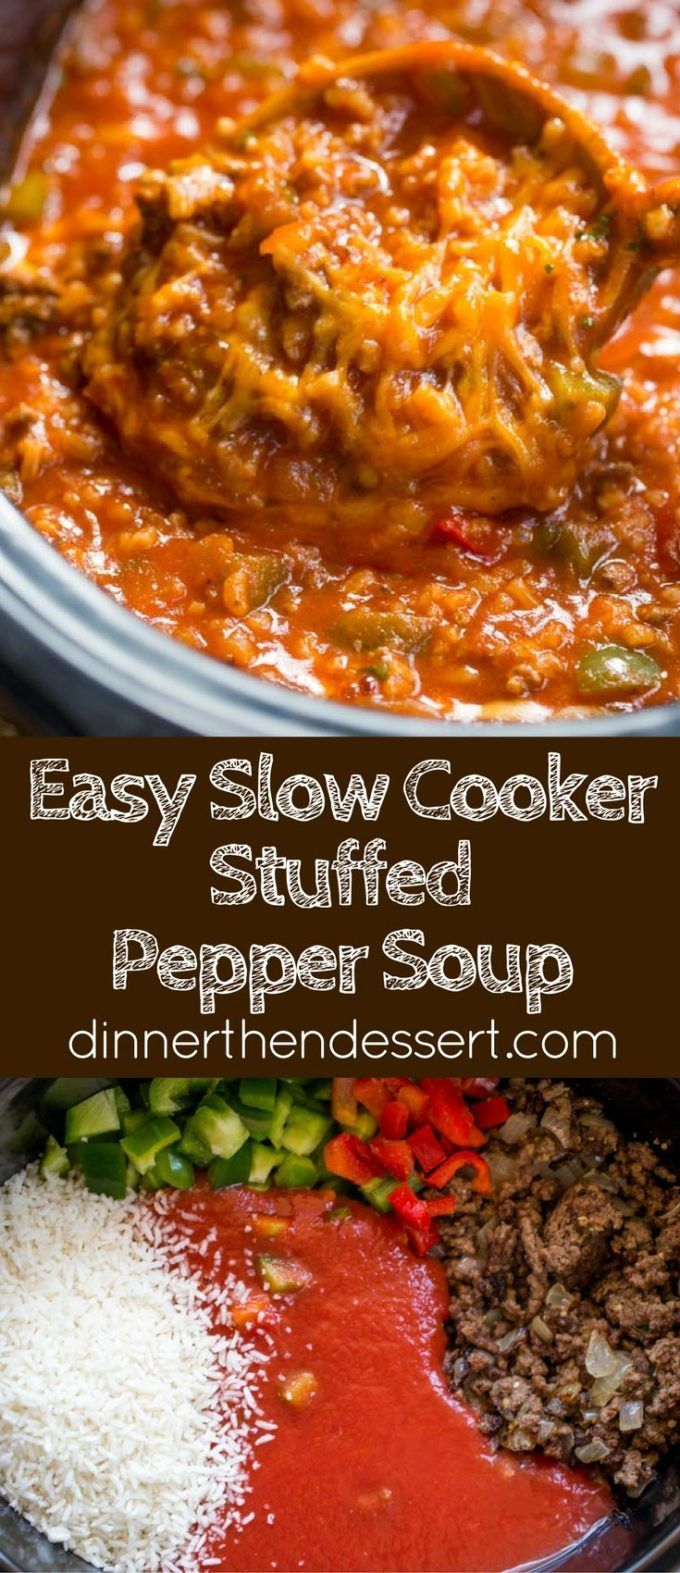 Slow Cooker Stuffed Pepper Soup Is Made With Ground Beef Bell Peppers Onions And Tomato Sauce Slow Cooker Stuffed Peppers Stuffed Peppers Stuffed Pepper Soup